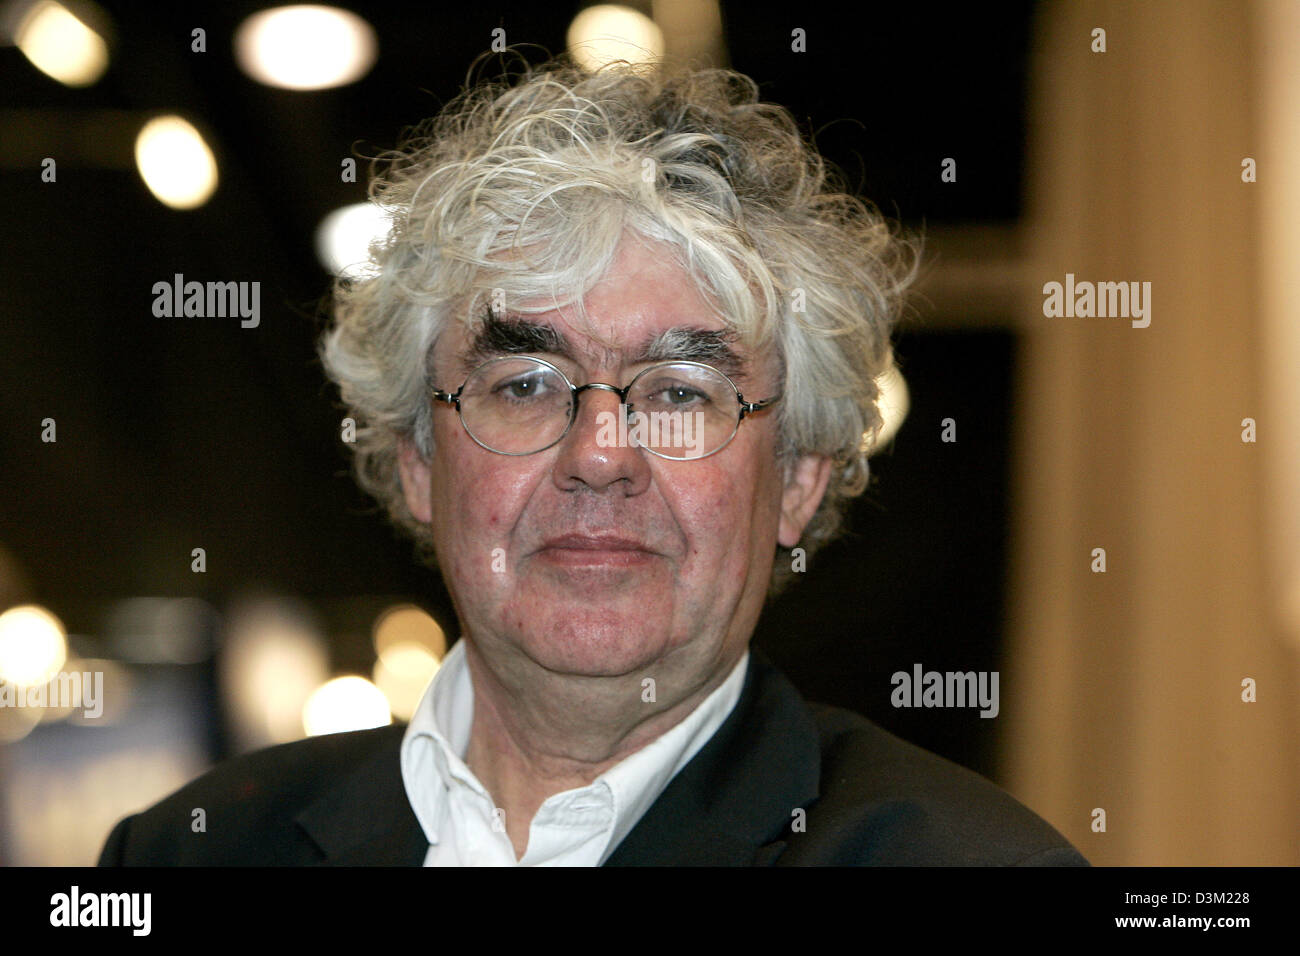 Mak Frankfurt Dpa) - Dutch Author And Publisher Geert Mak Pictured At The Stock Photo - Alamy